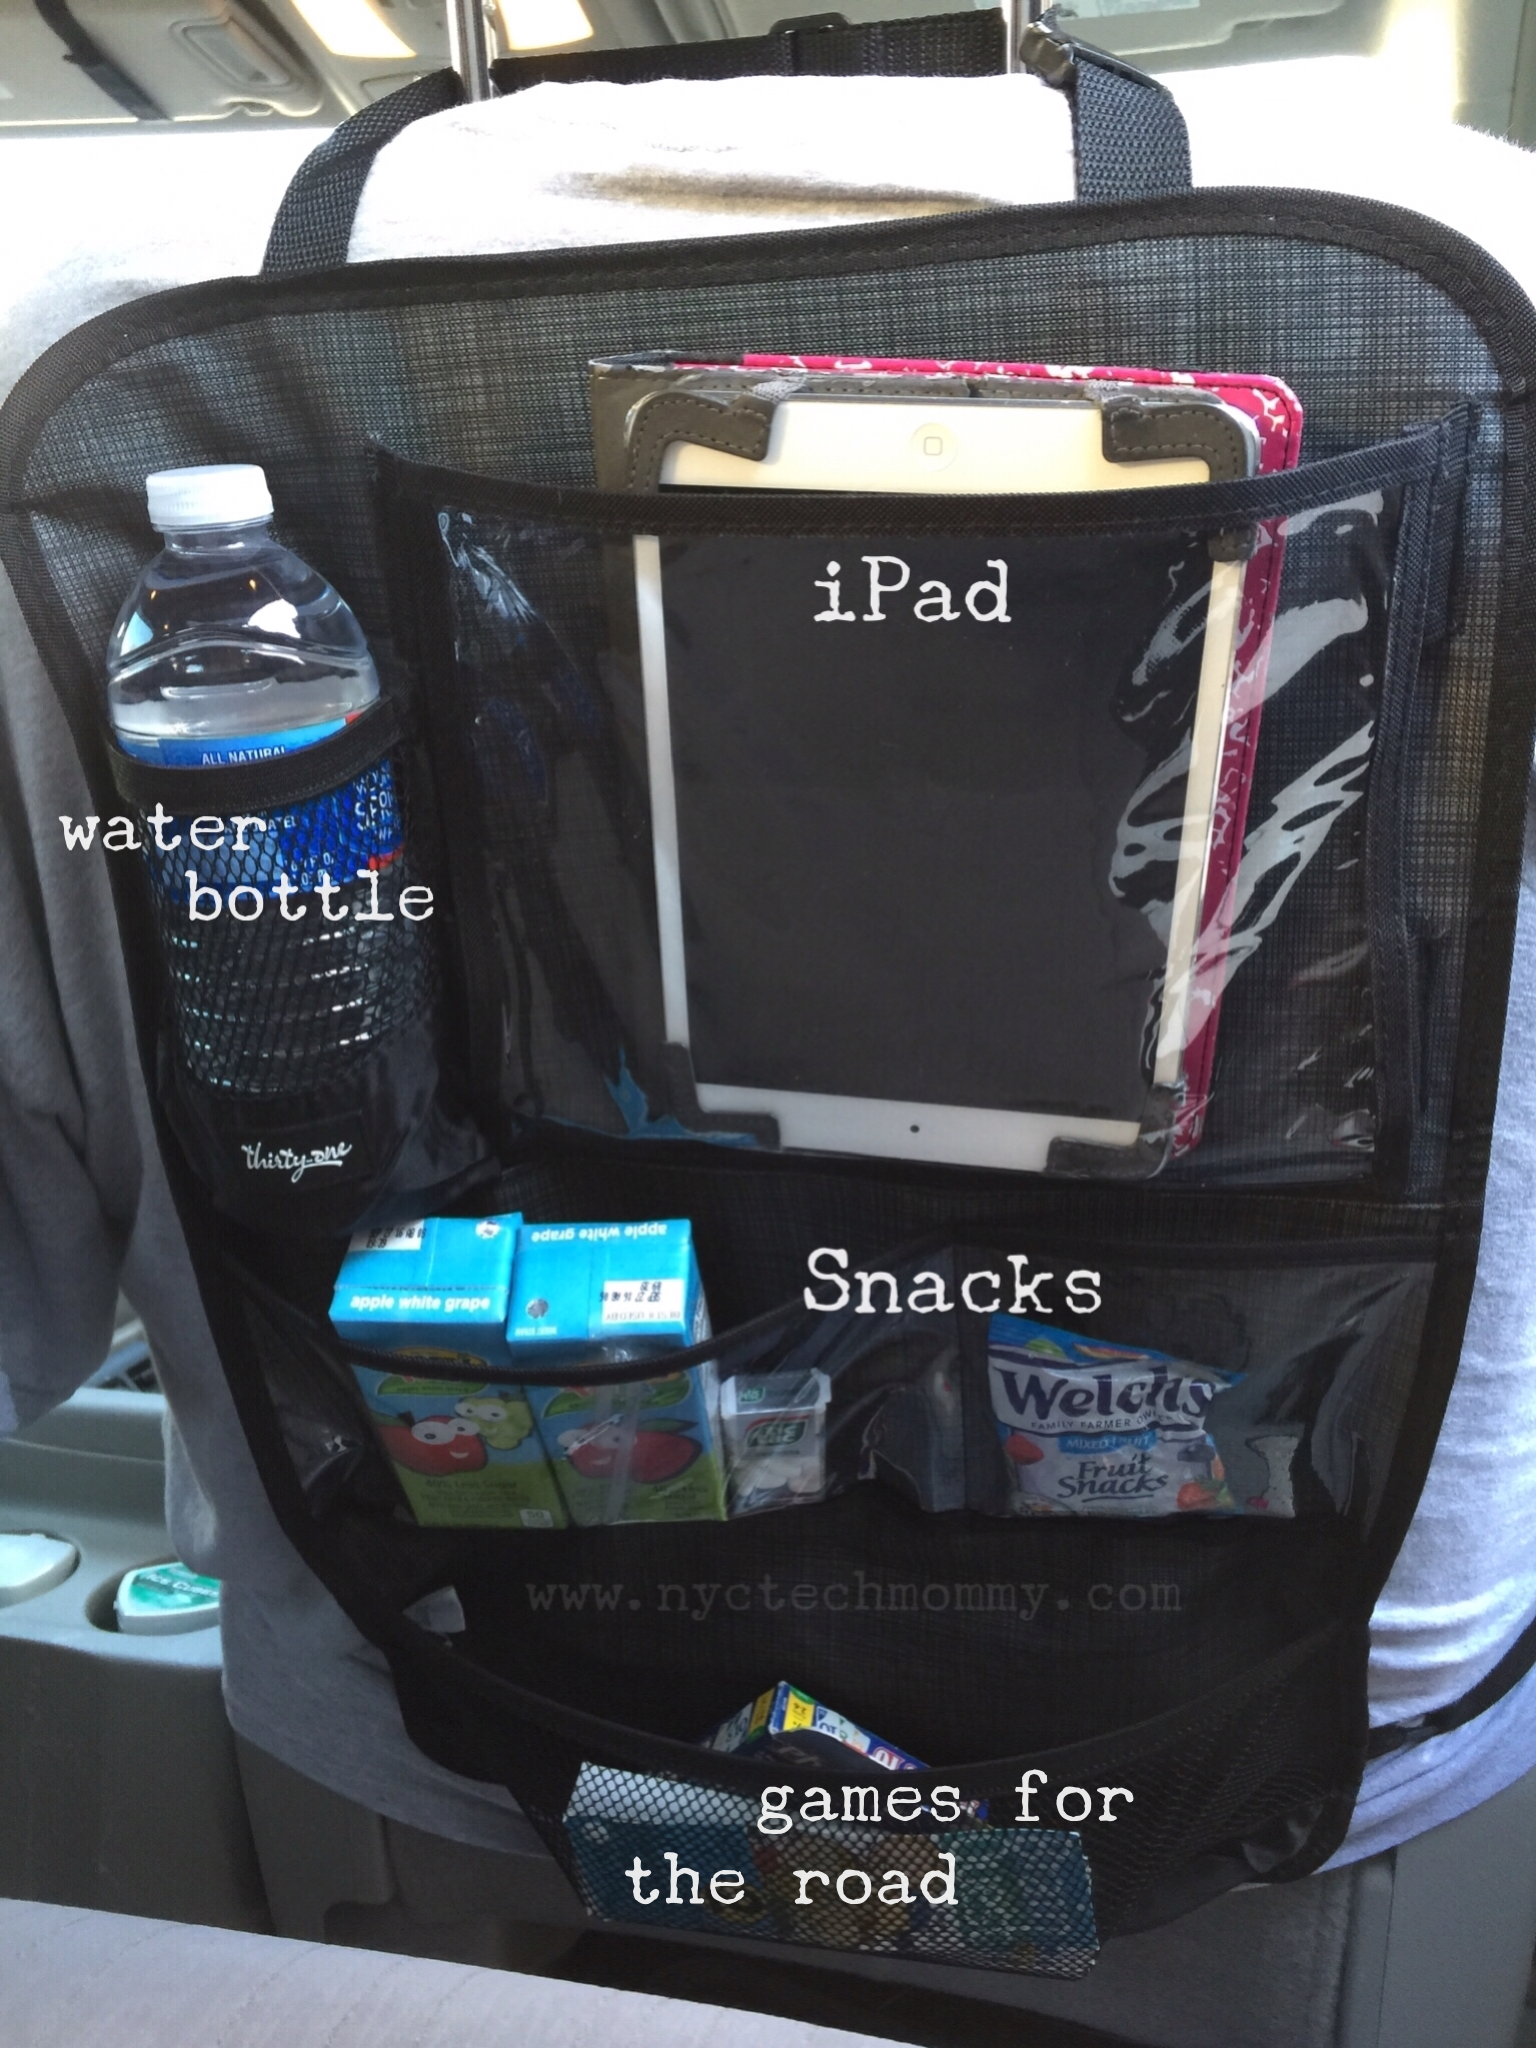 The Hang Up Activity Organizer from Thirty-One - Hangs neatly behind your car seat and helps keep all of your kid's stuff organized and within arms length. No more nagging and asking for snacks during long road trips!